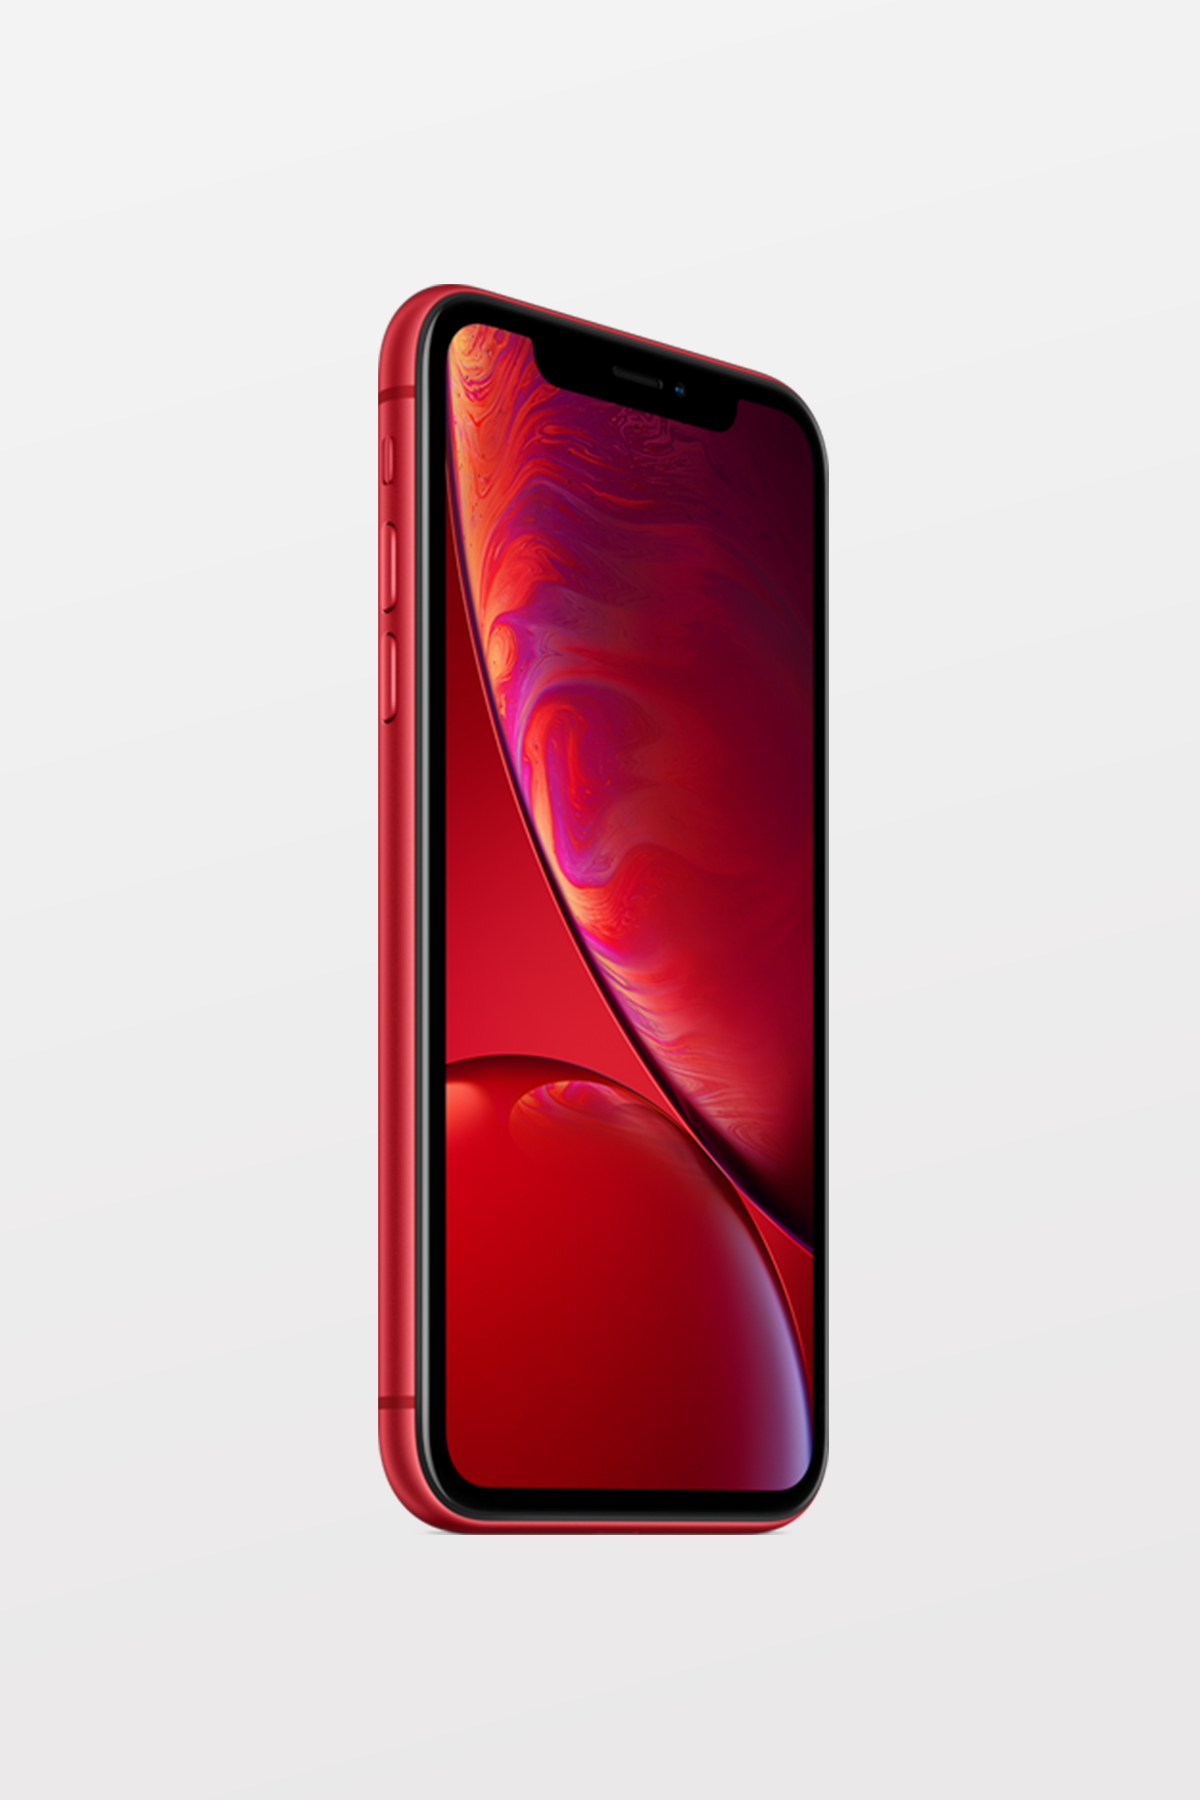 Apple iPhone Xr 128GB - (PRODUCT) Red